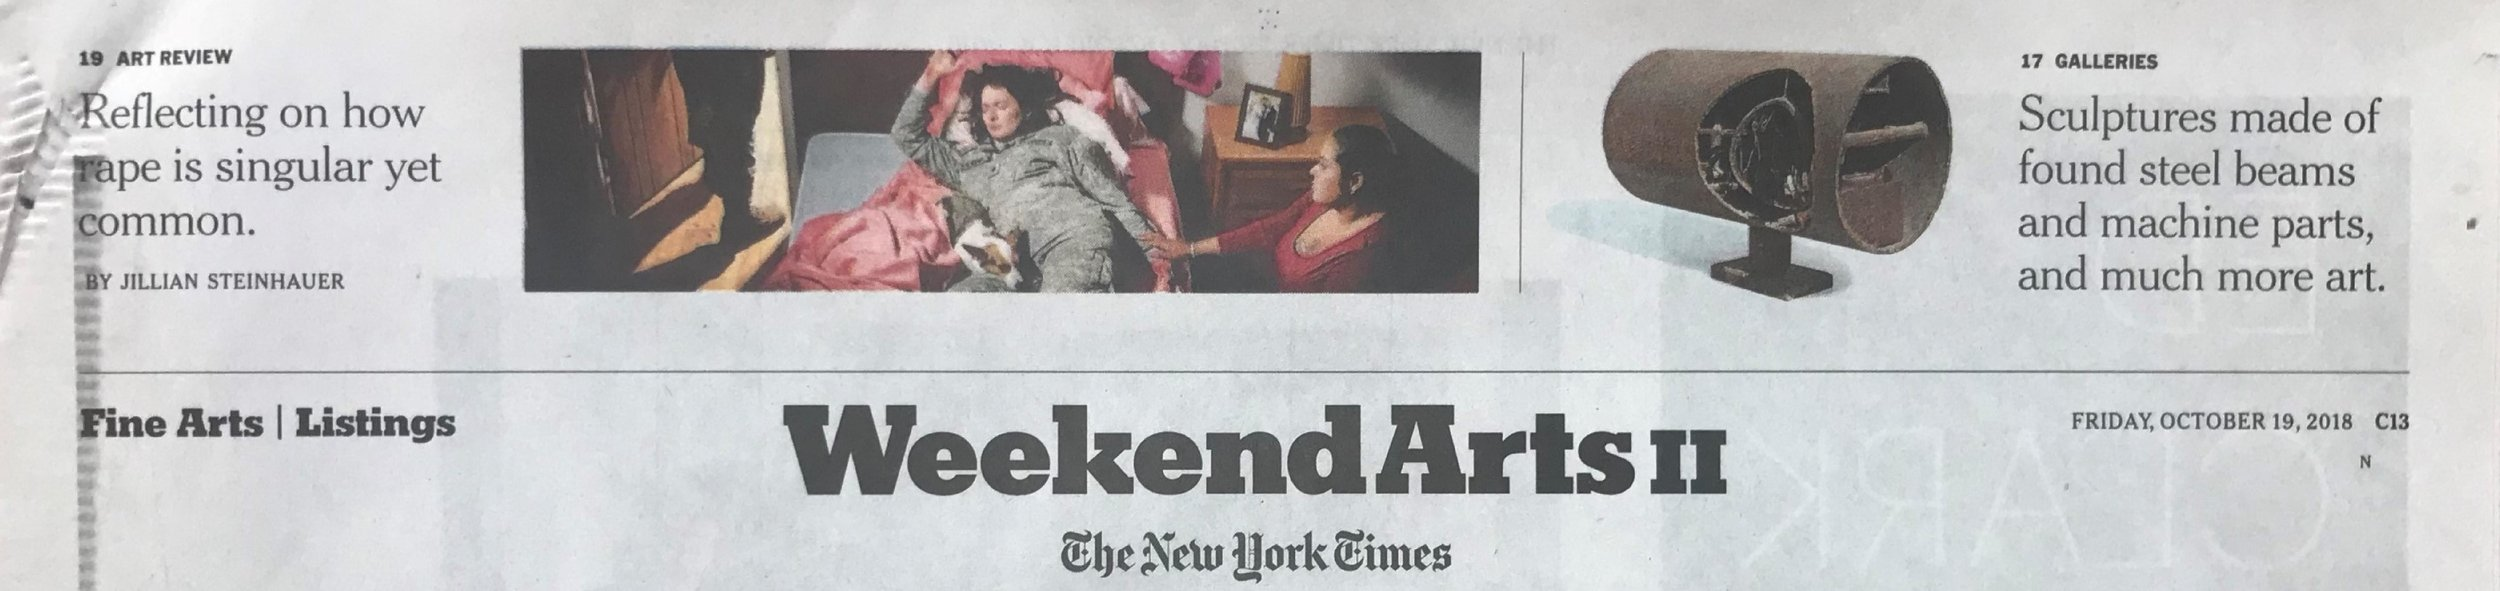 NYT composite_Page_1.jpeg